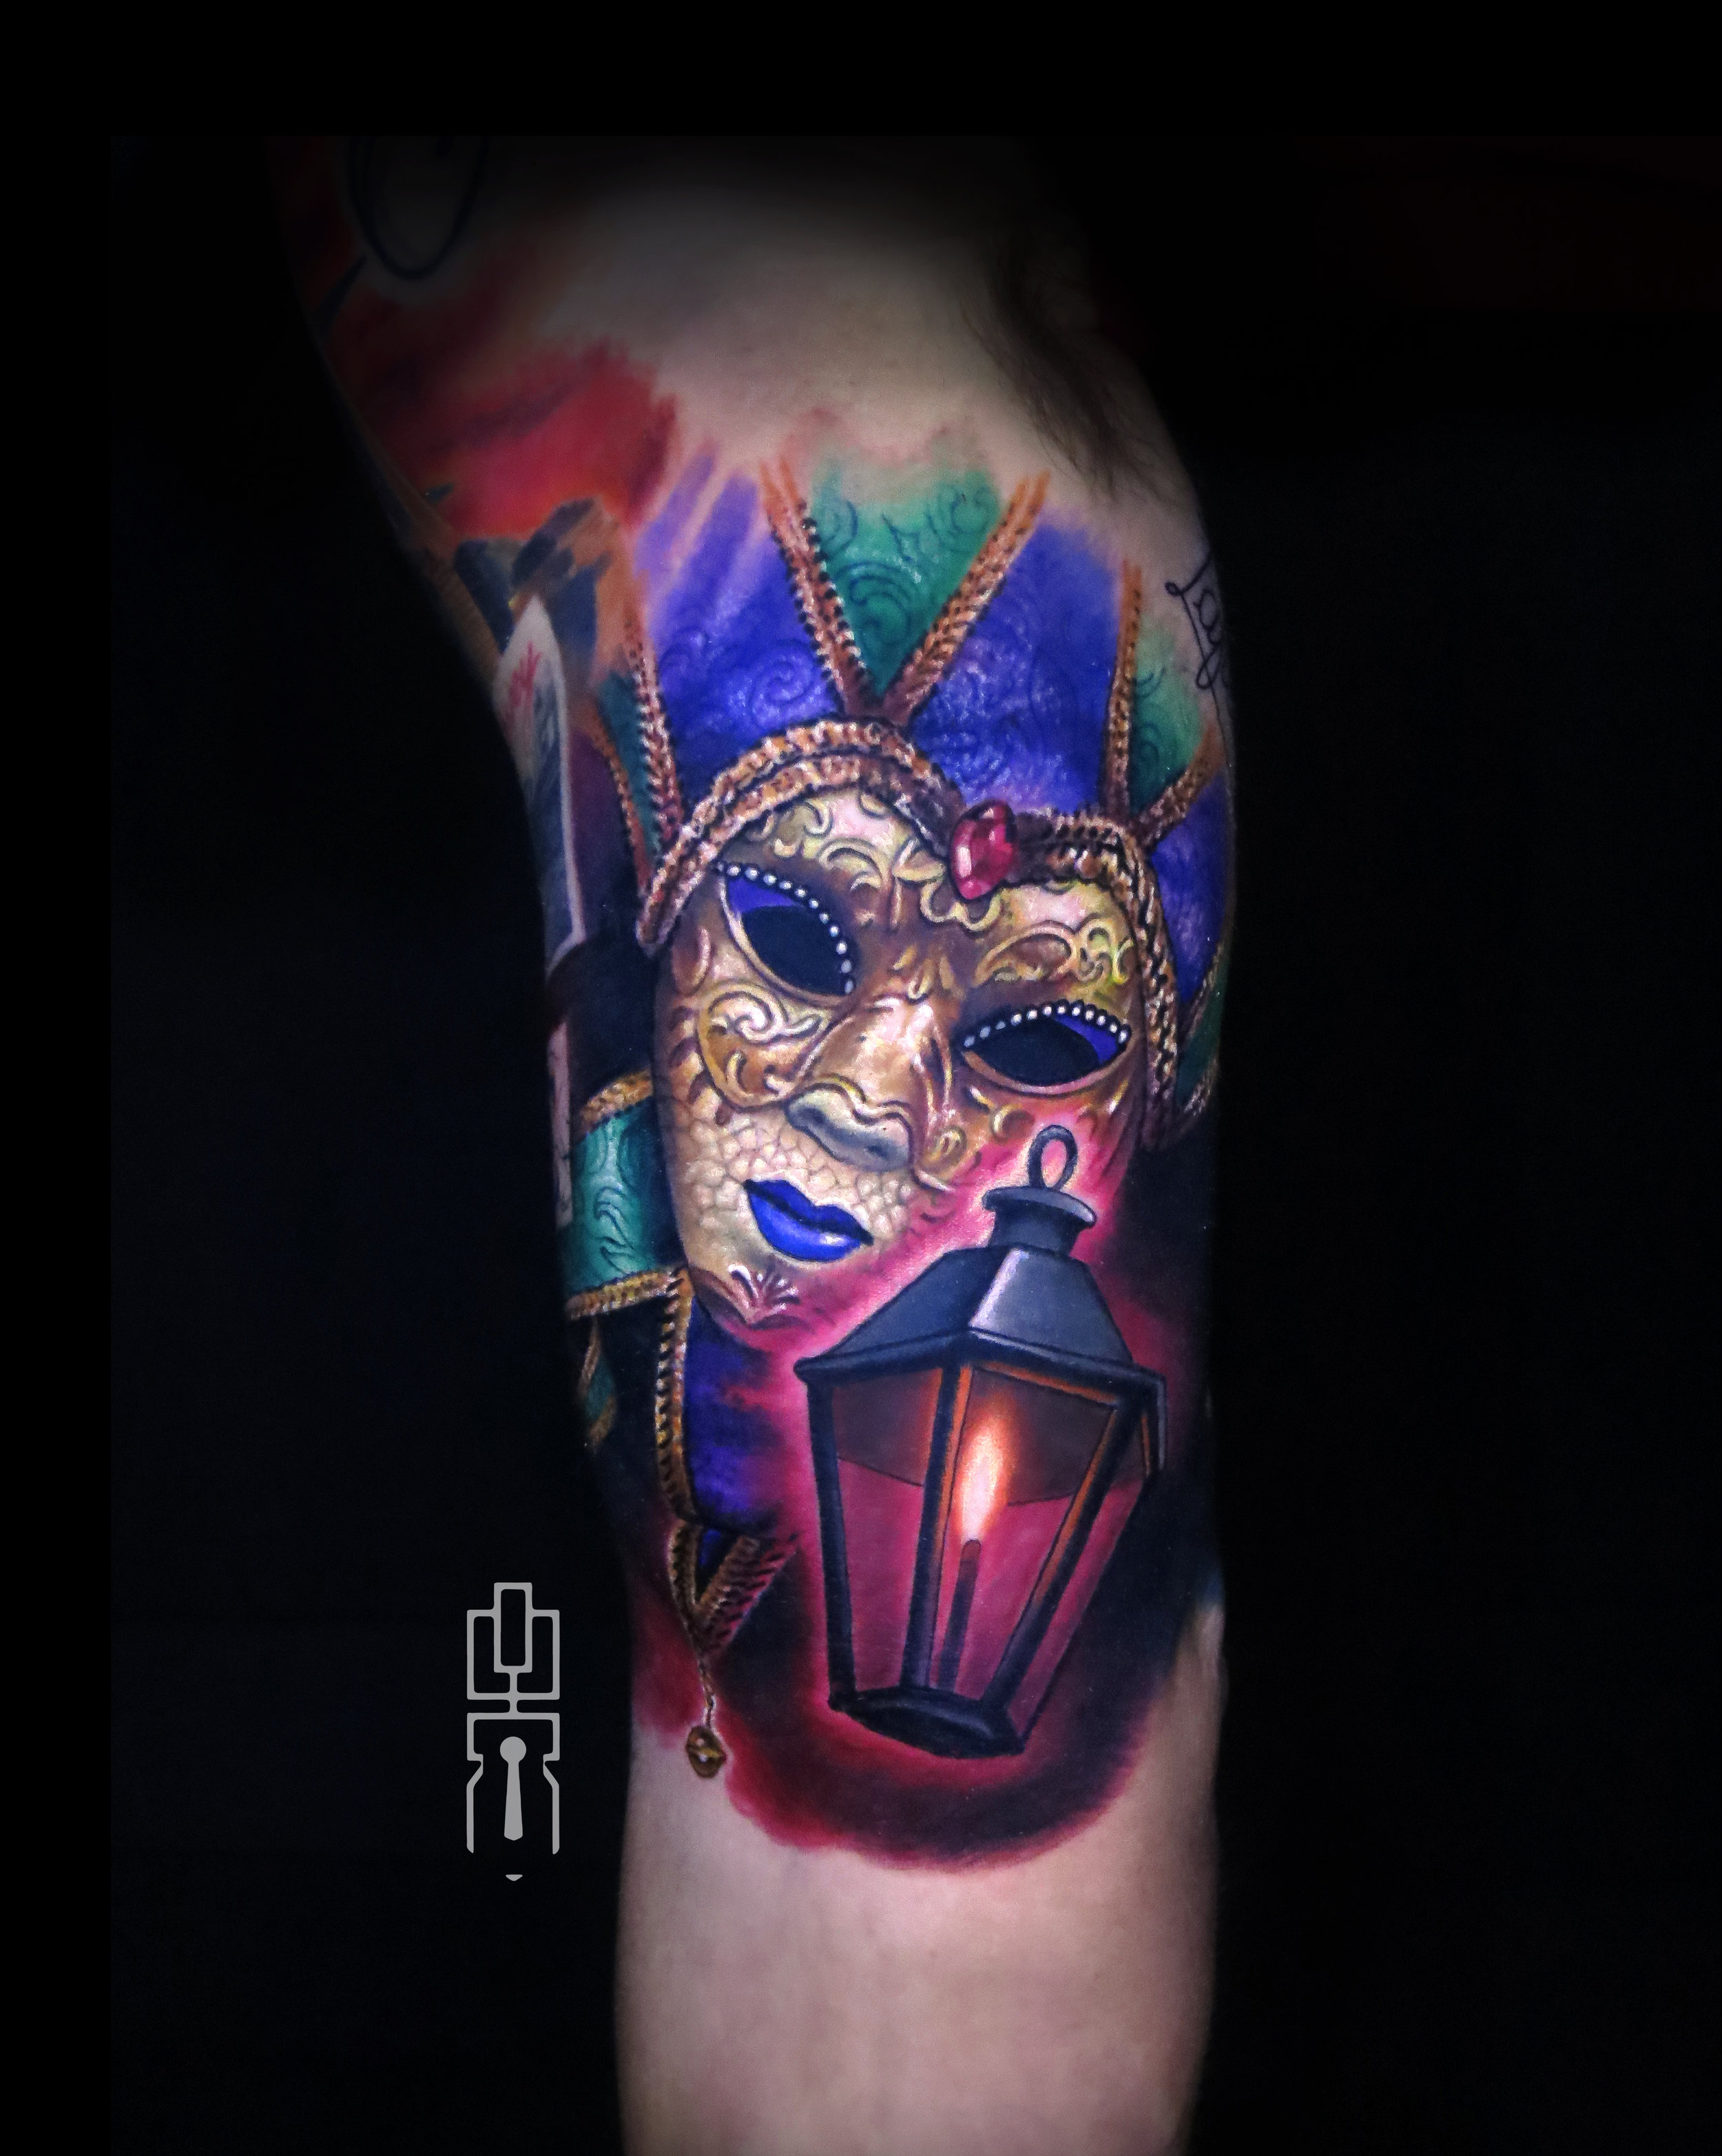 mardi gras mask new orleans lantern tattoo.jpg